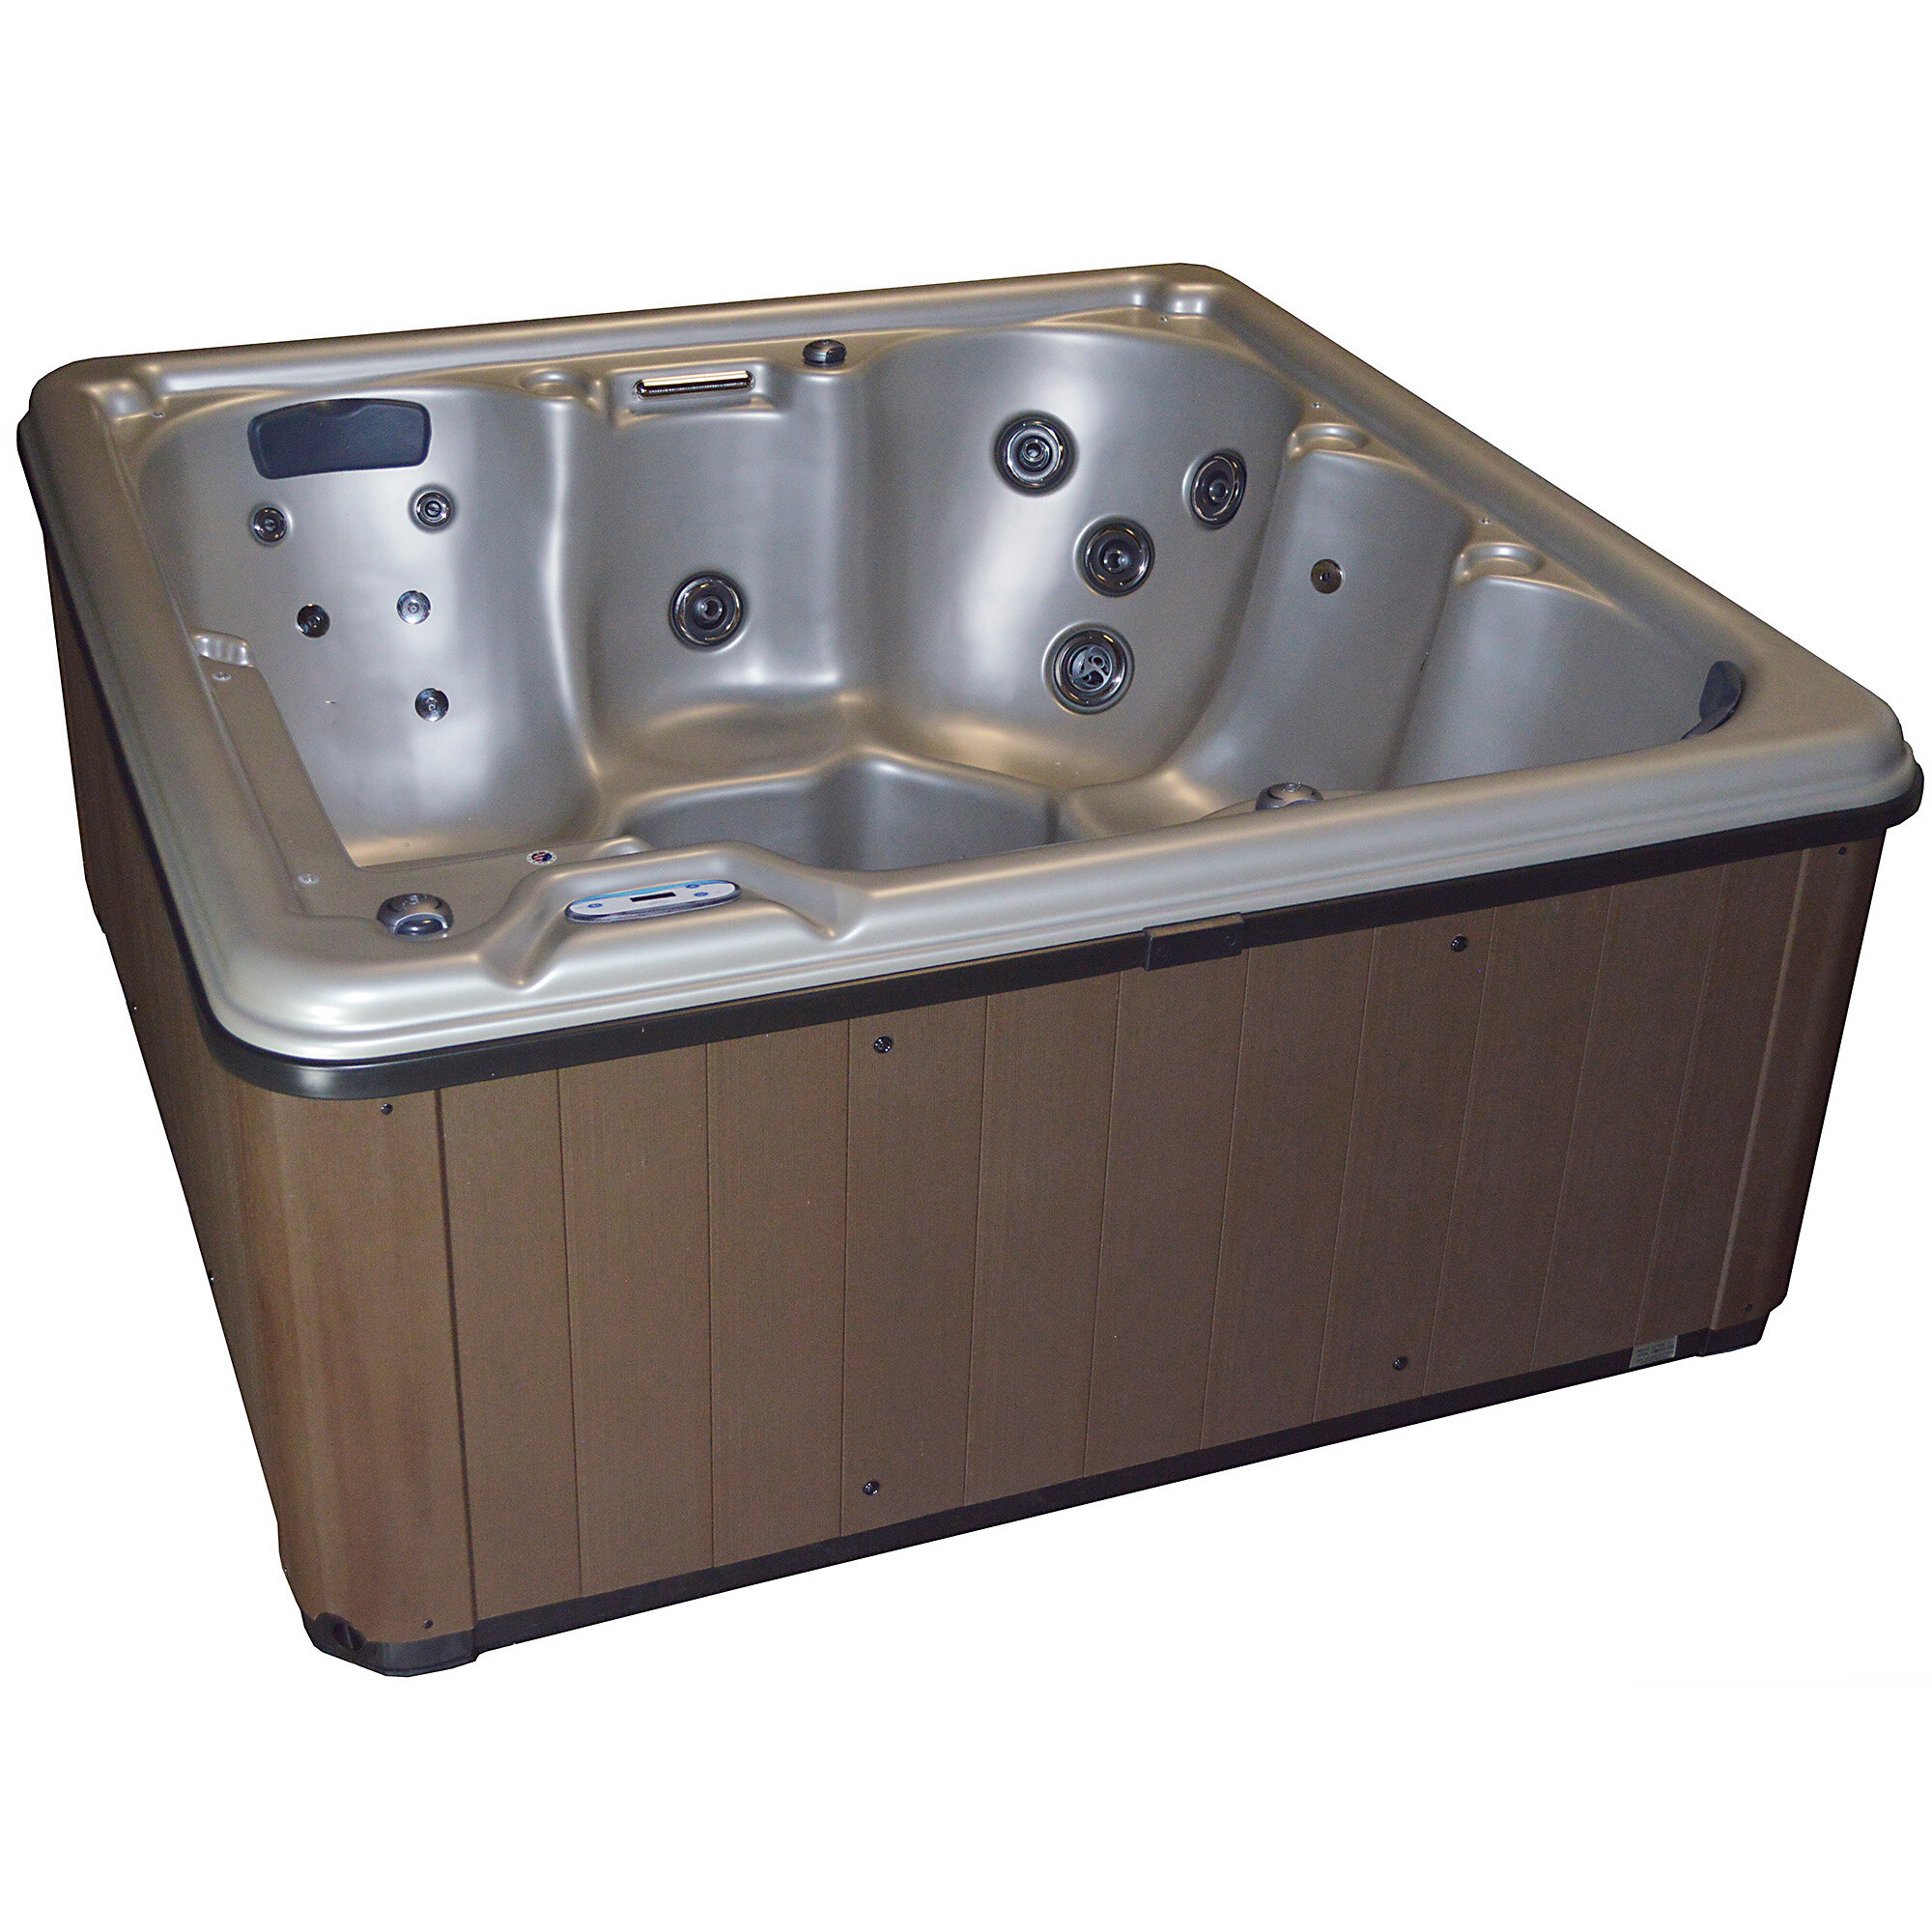 Cyannavalleyspas 6 Person 31 Jet Hot Tub With Dual Pump And Lounger Reviews